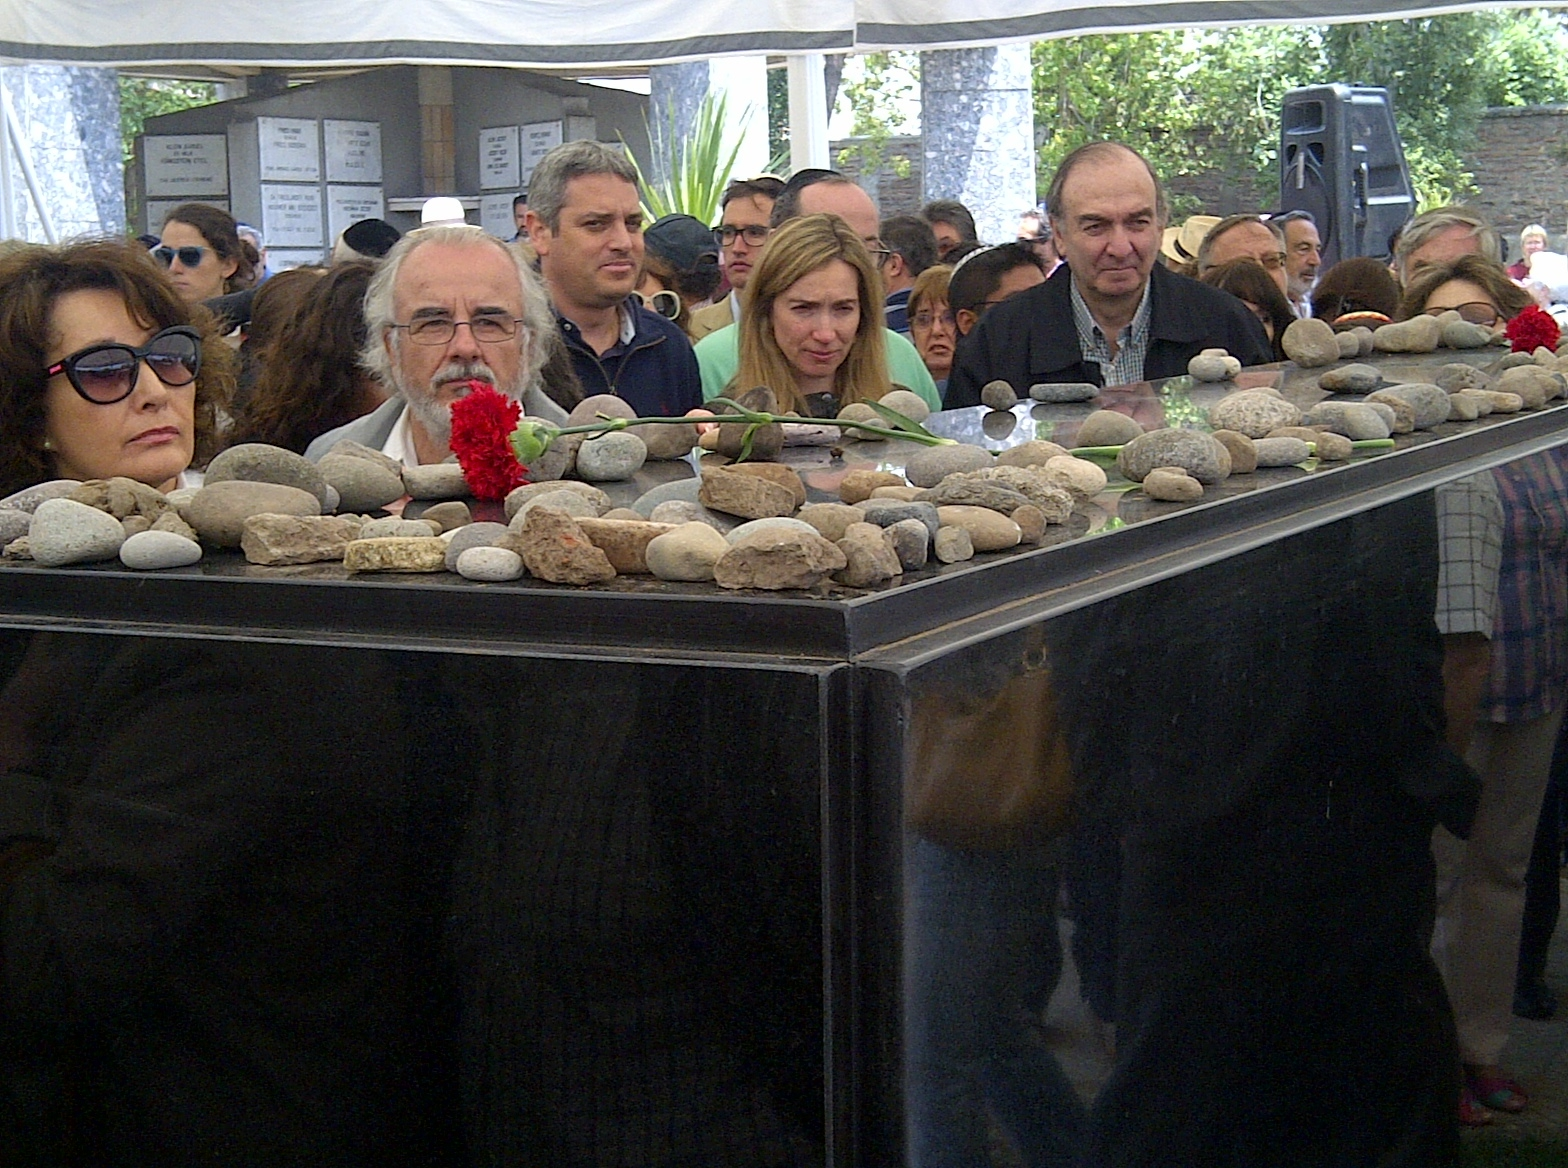 Memorial service at the Jewish cemetery, Santiago, Chile, 2013